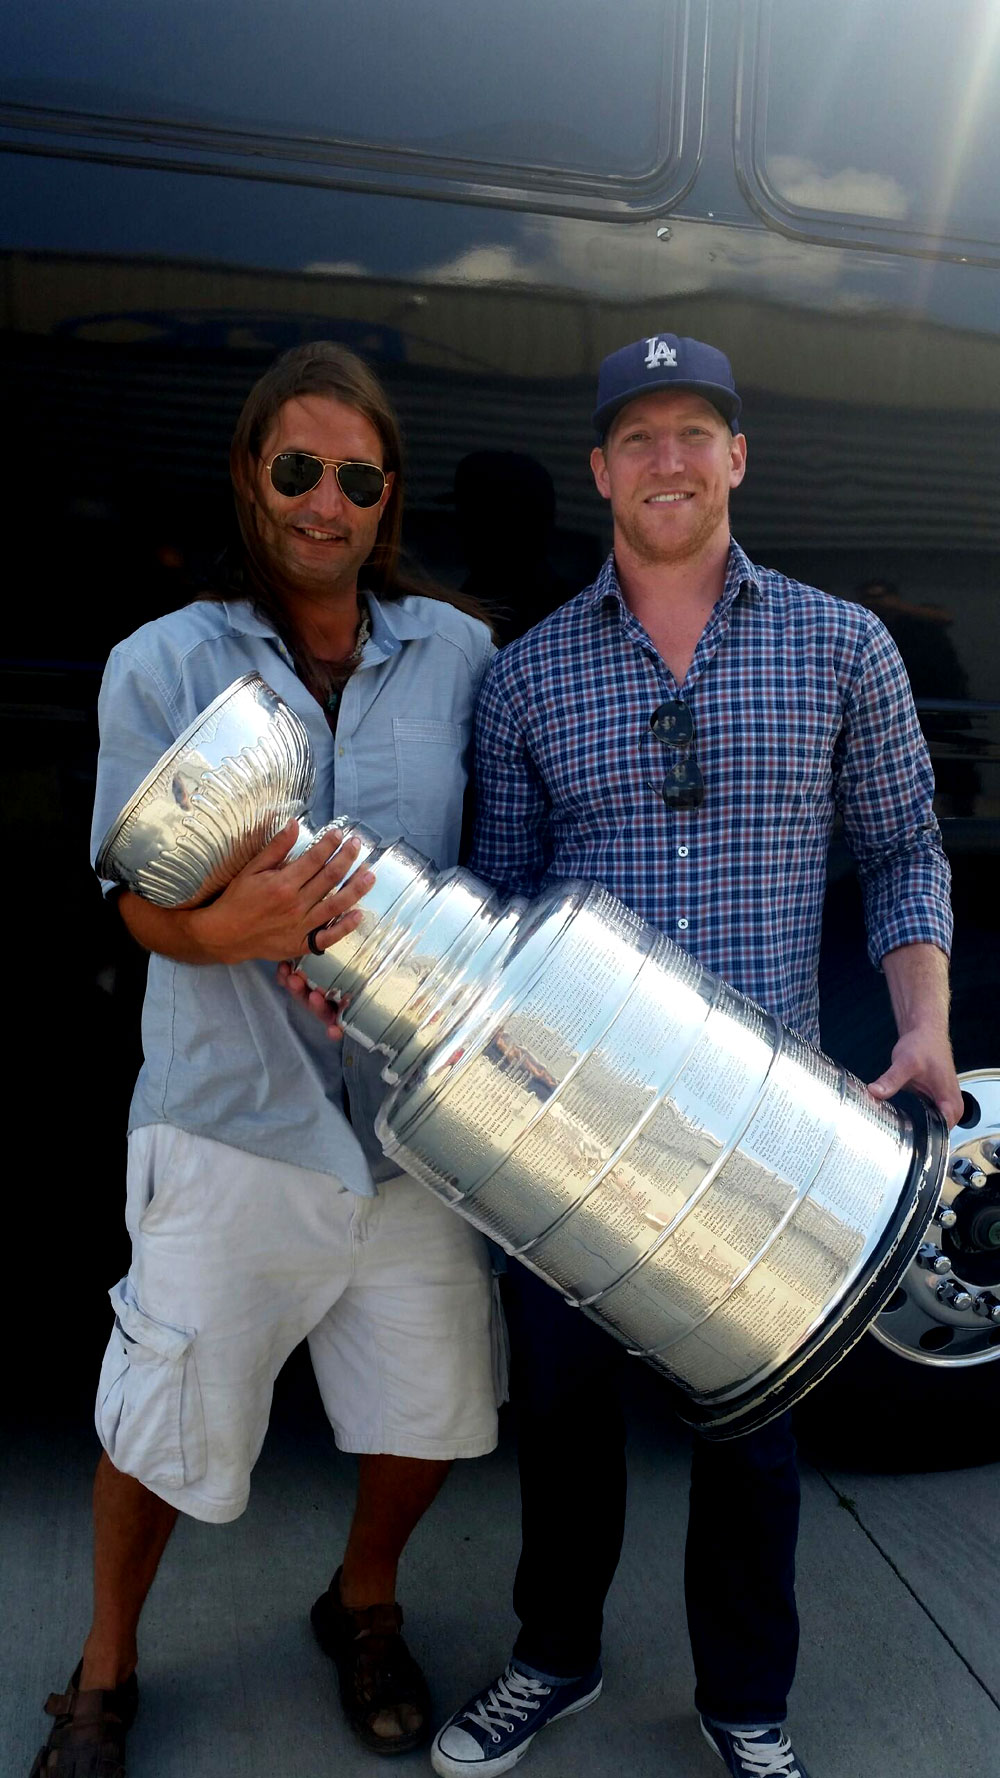 Matt Greene and the Stanley Cup with Space Cruise's Matt Gust